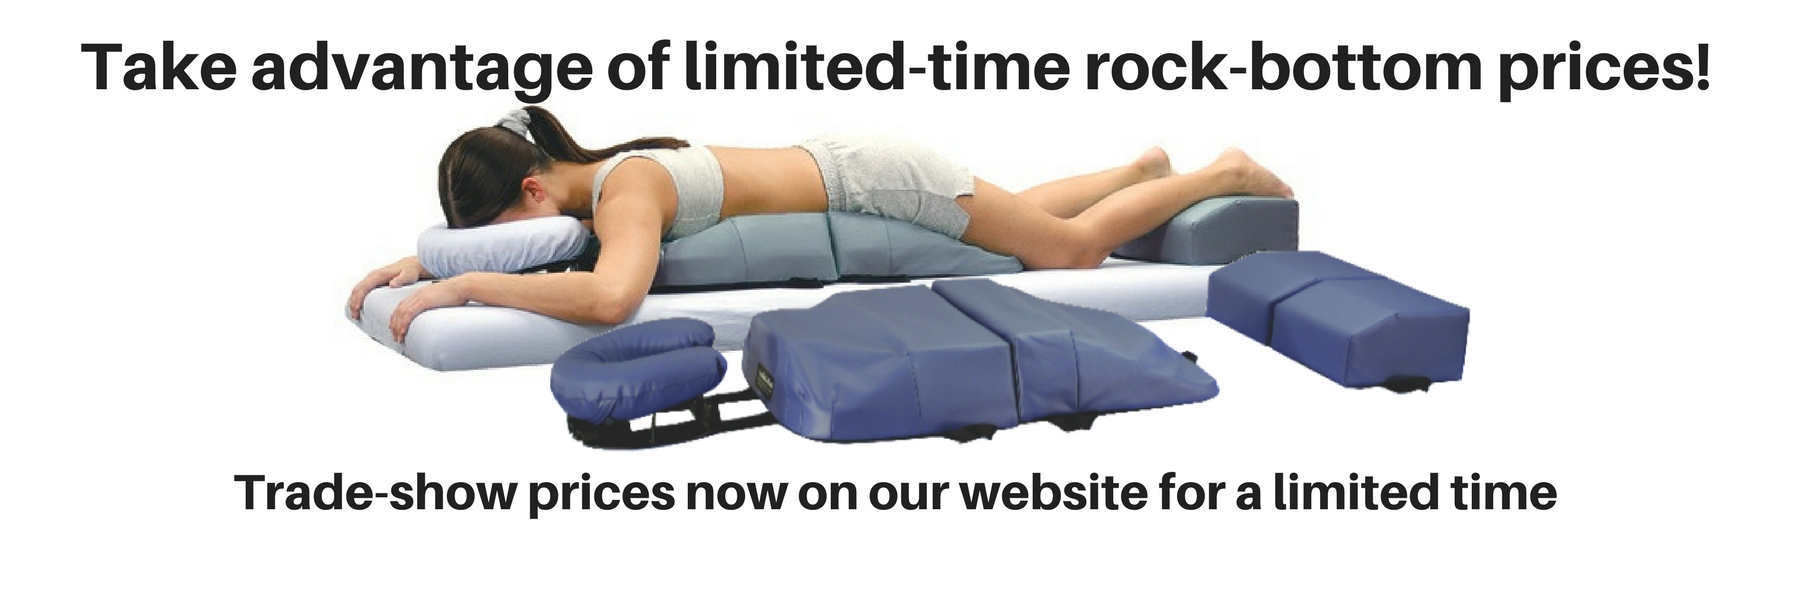 Take advantage of limited-time rock-bottom prices! Trade-show prices now on our website for a limited time